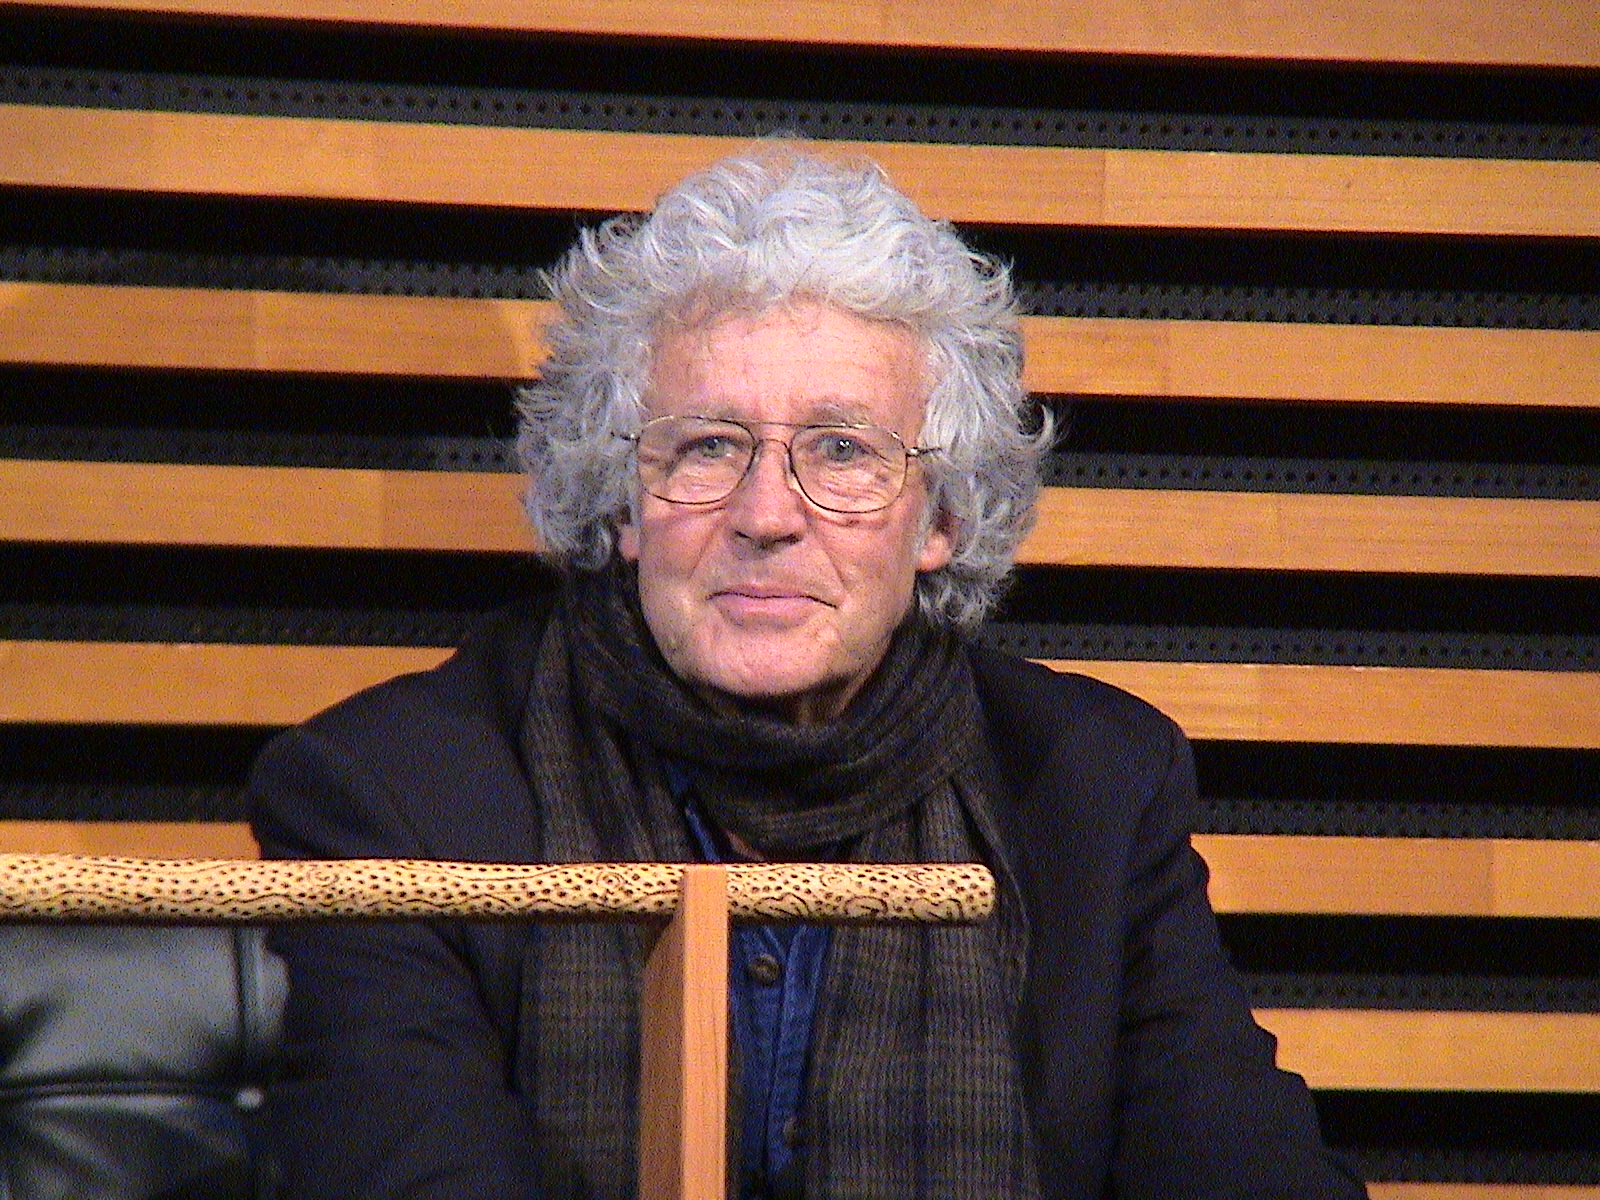 Photo of Michael Leunig